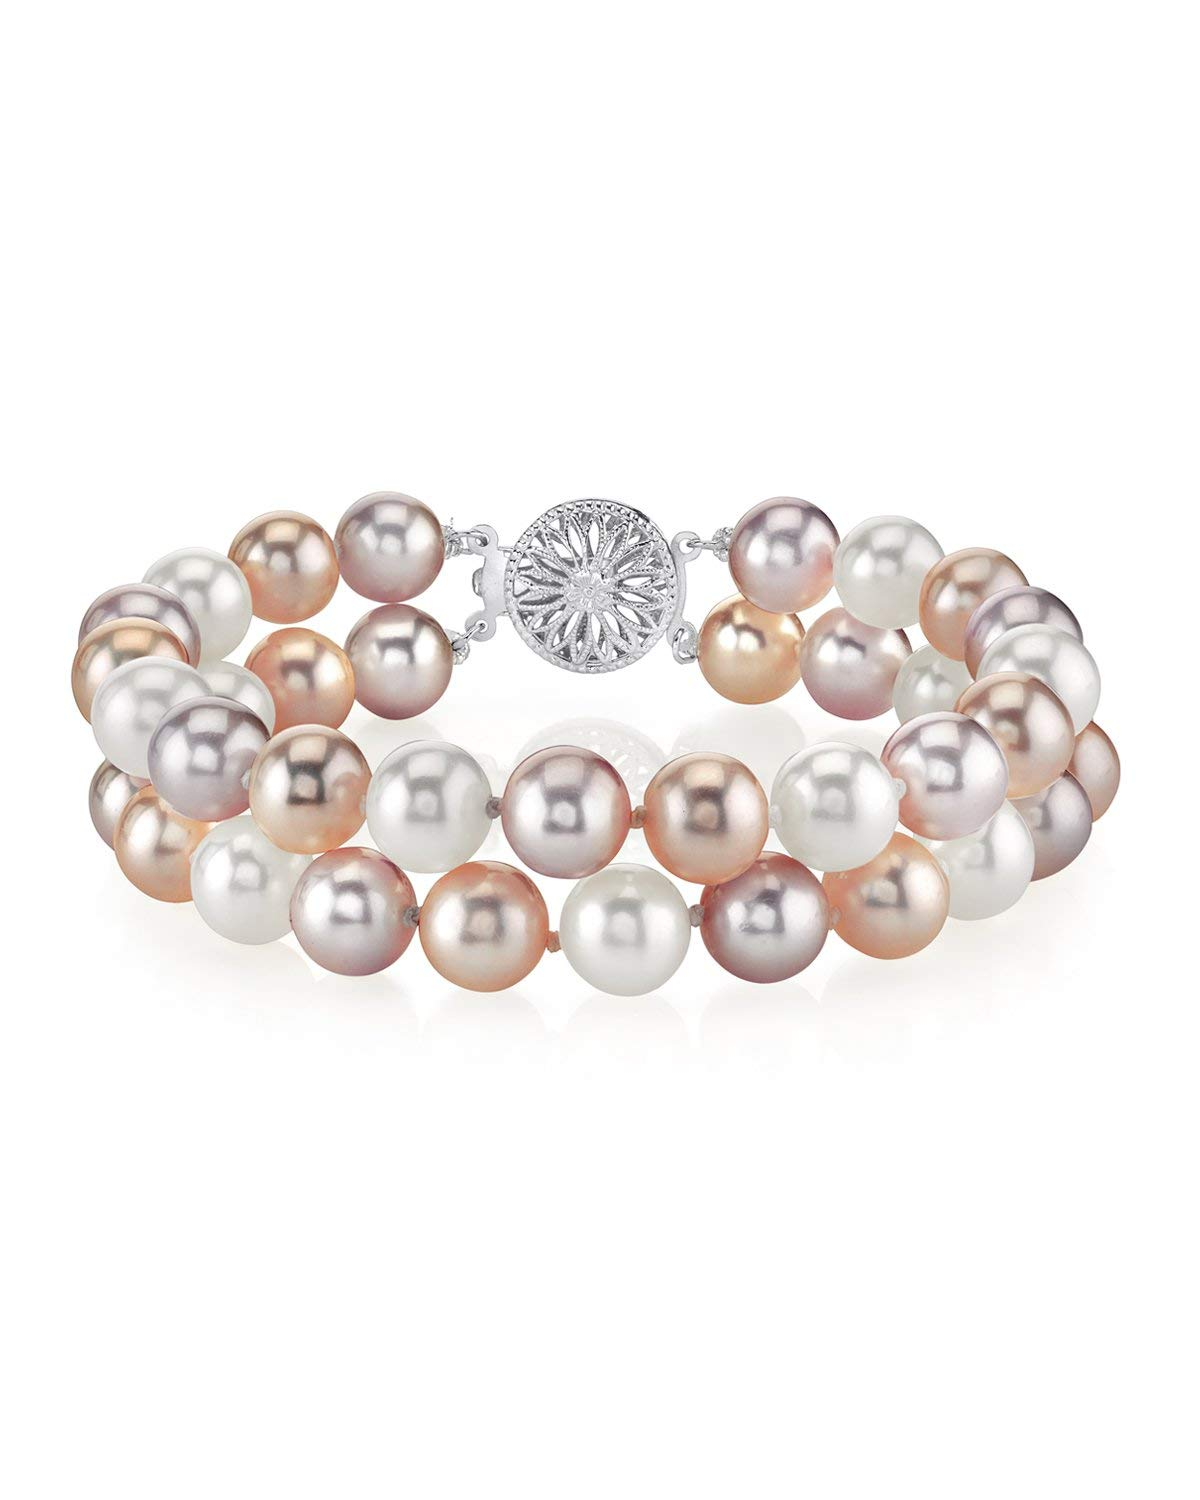 THE PEARL SOURCE Sterling Silver 8-9mm AAA Quality Round Multicolor Freshwater Cultured Pearl Double Strand Bracelet for Women by The Pearl Source